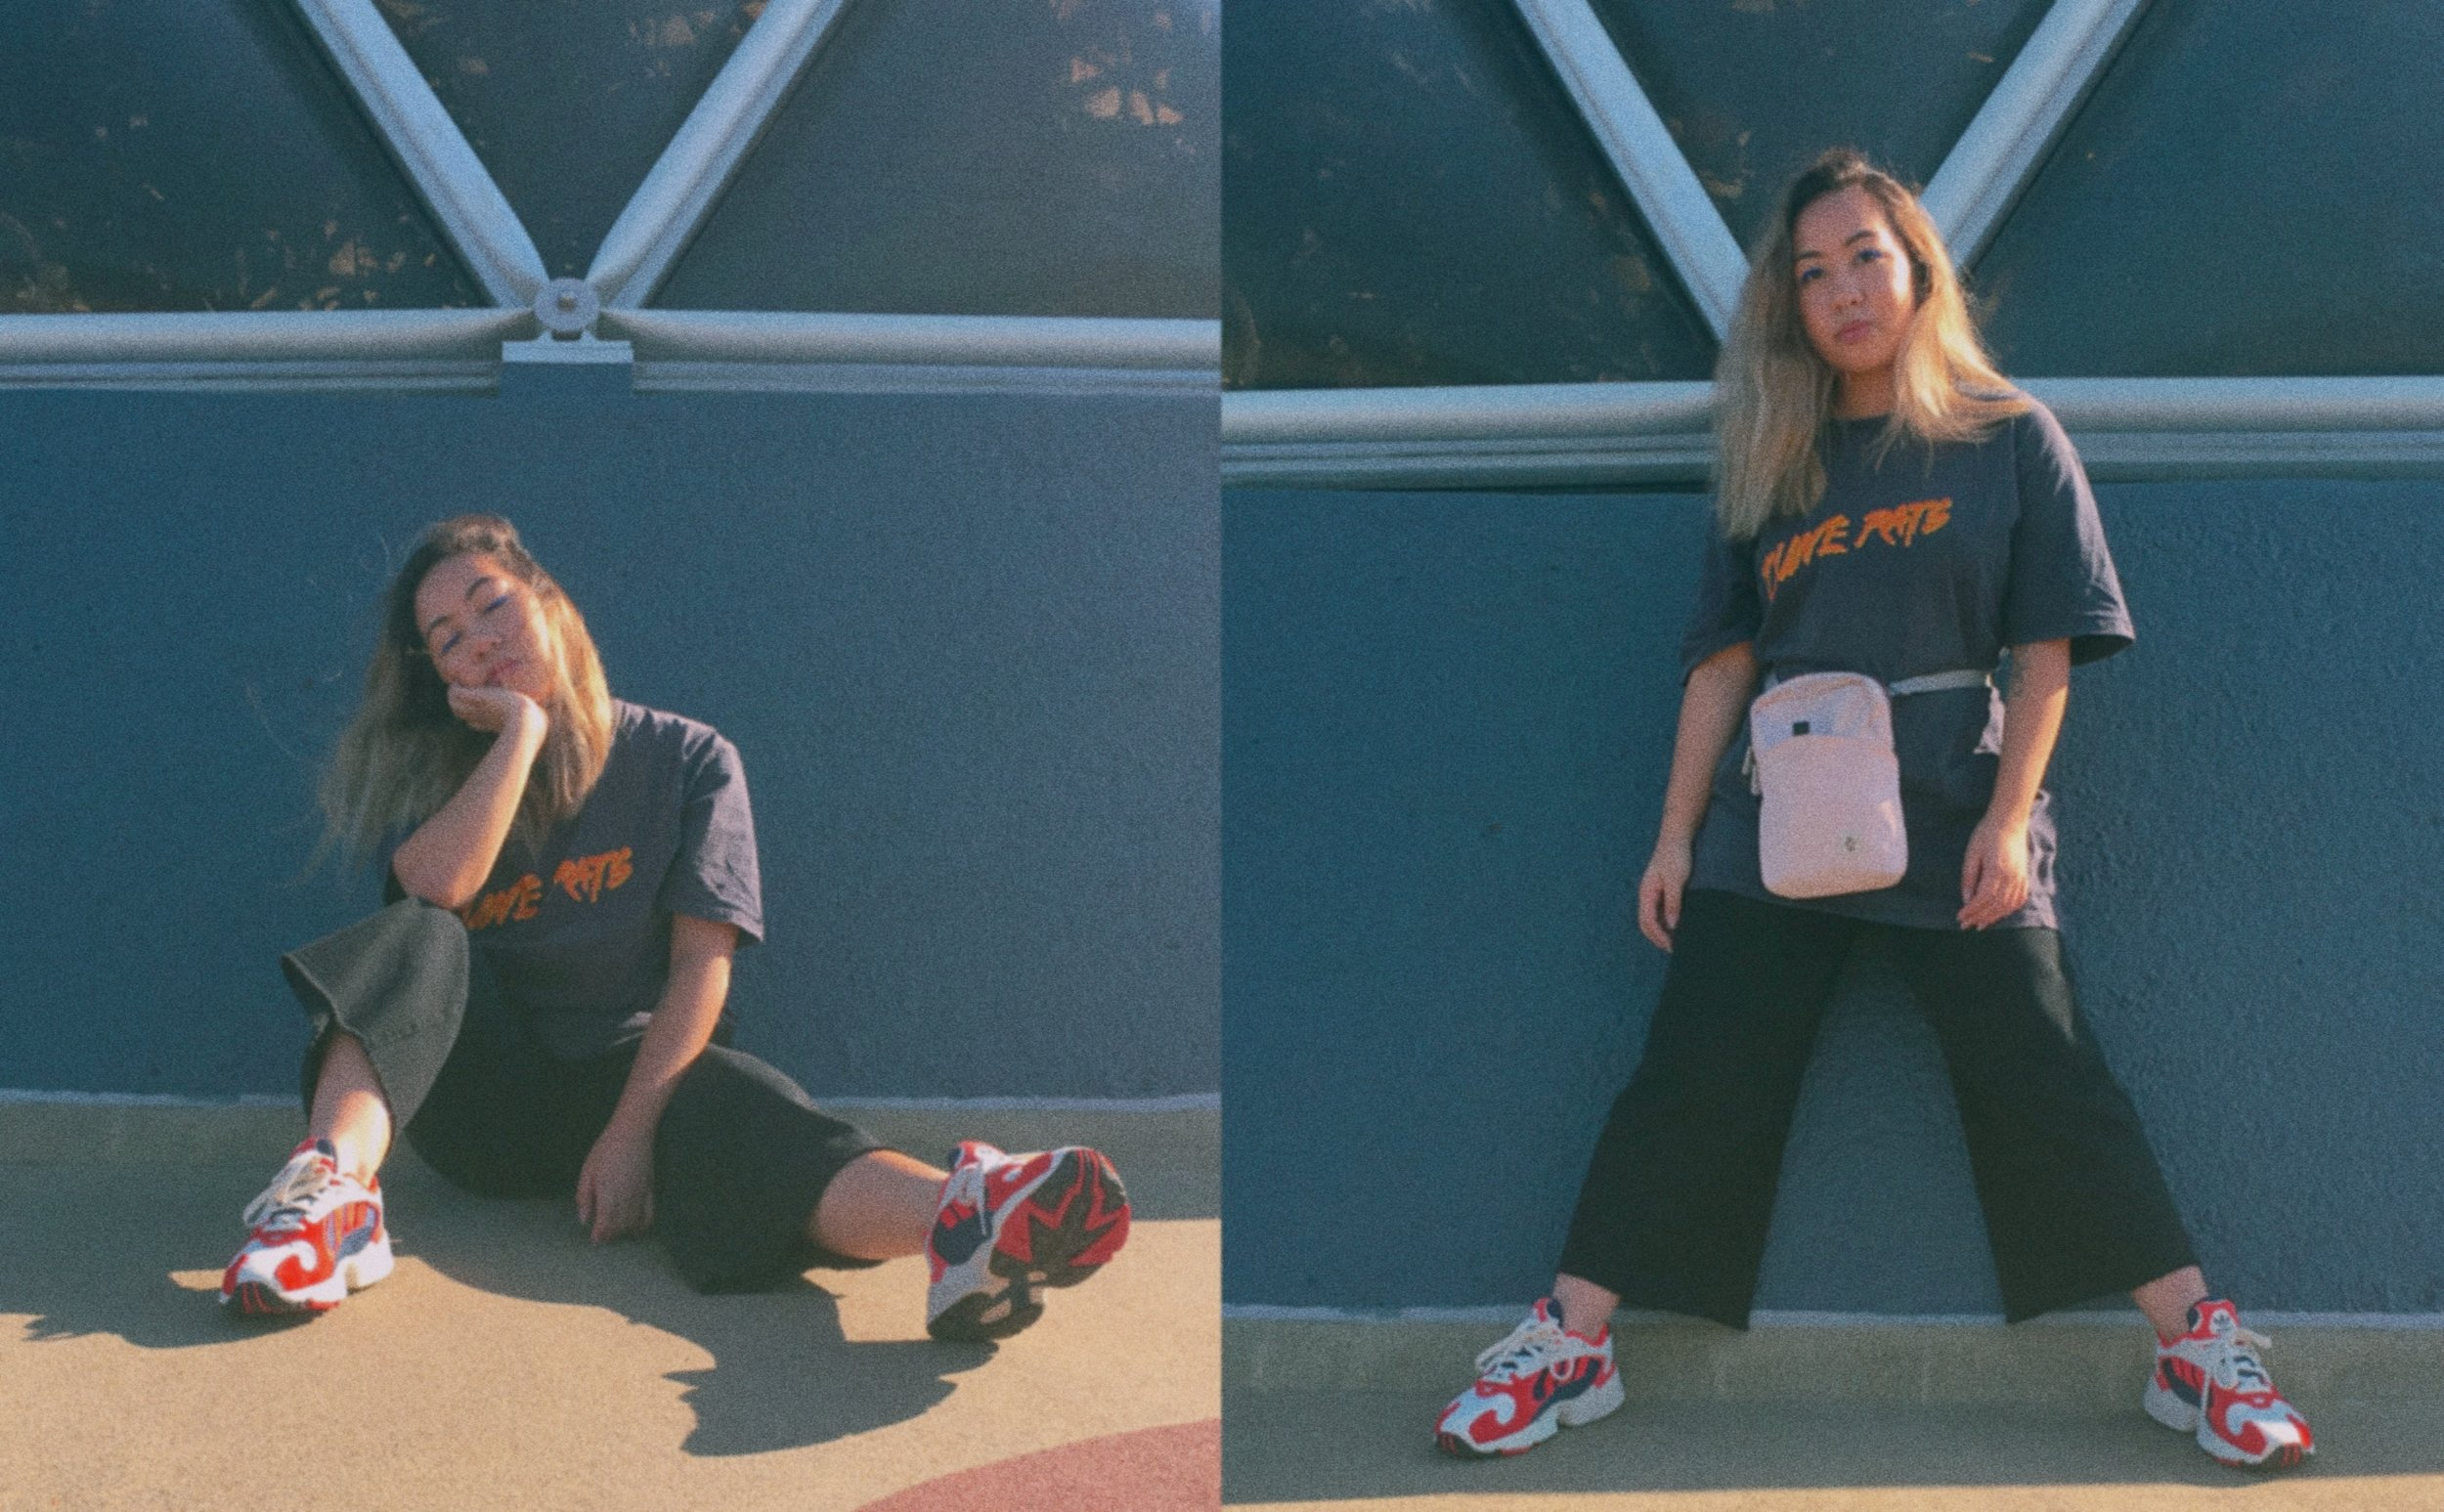 Band Tee //  Dune Rats Merch 'Sexy Beach'  Culottes //  Alice in the Eve Paloma  Side Bag // Crumpler  (Similar Item)